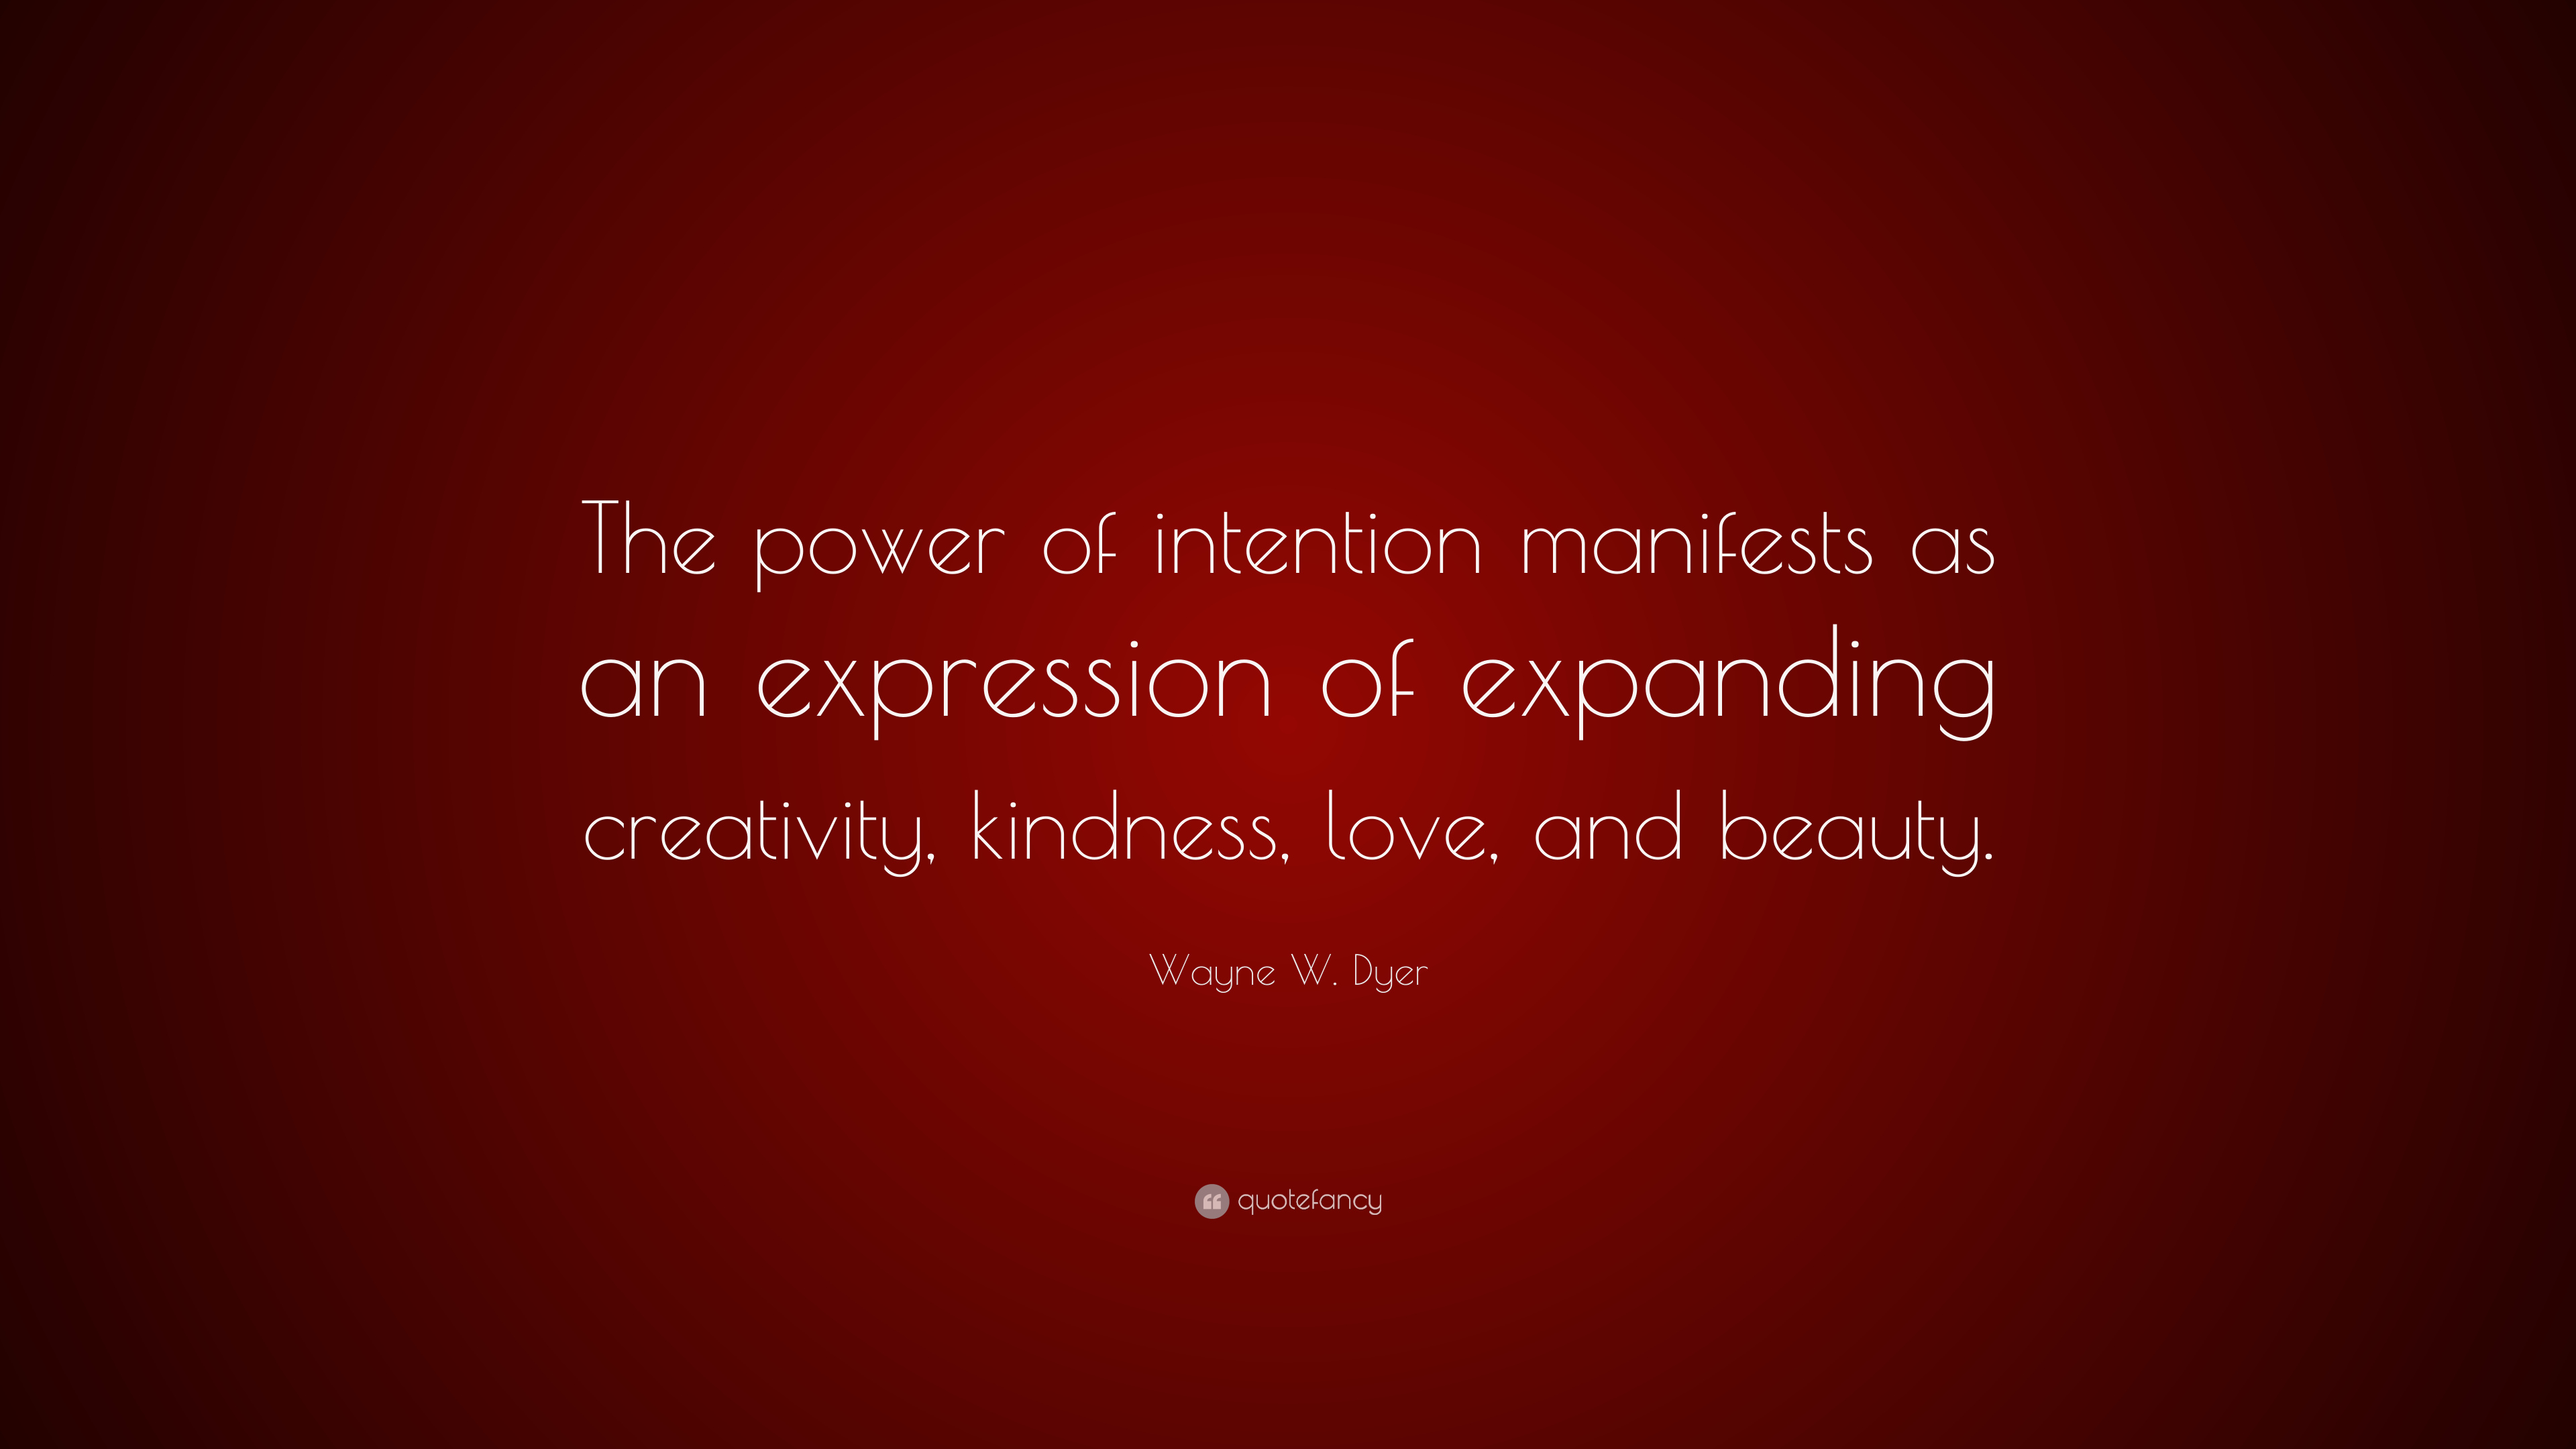 Wayne W Dyer Quote The Power Of Intention Manifests As An